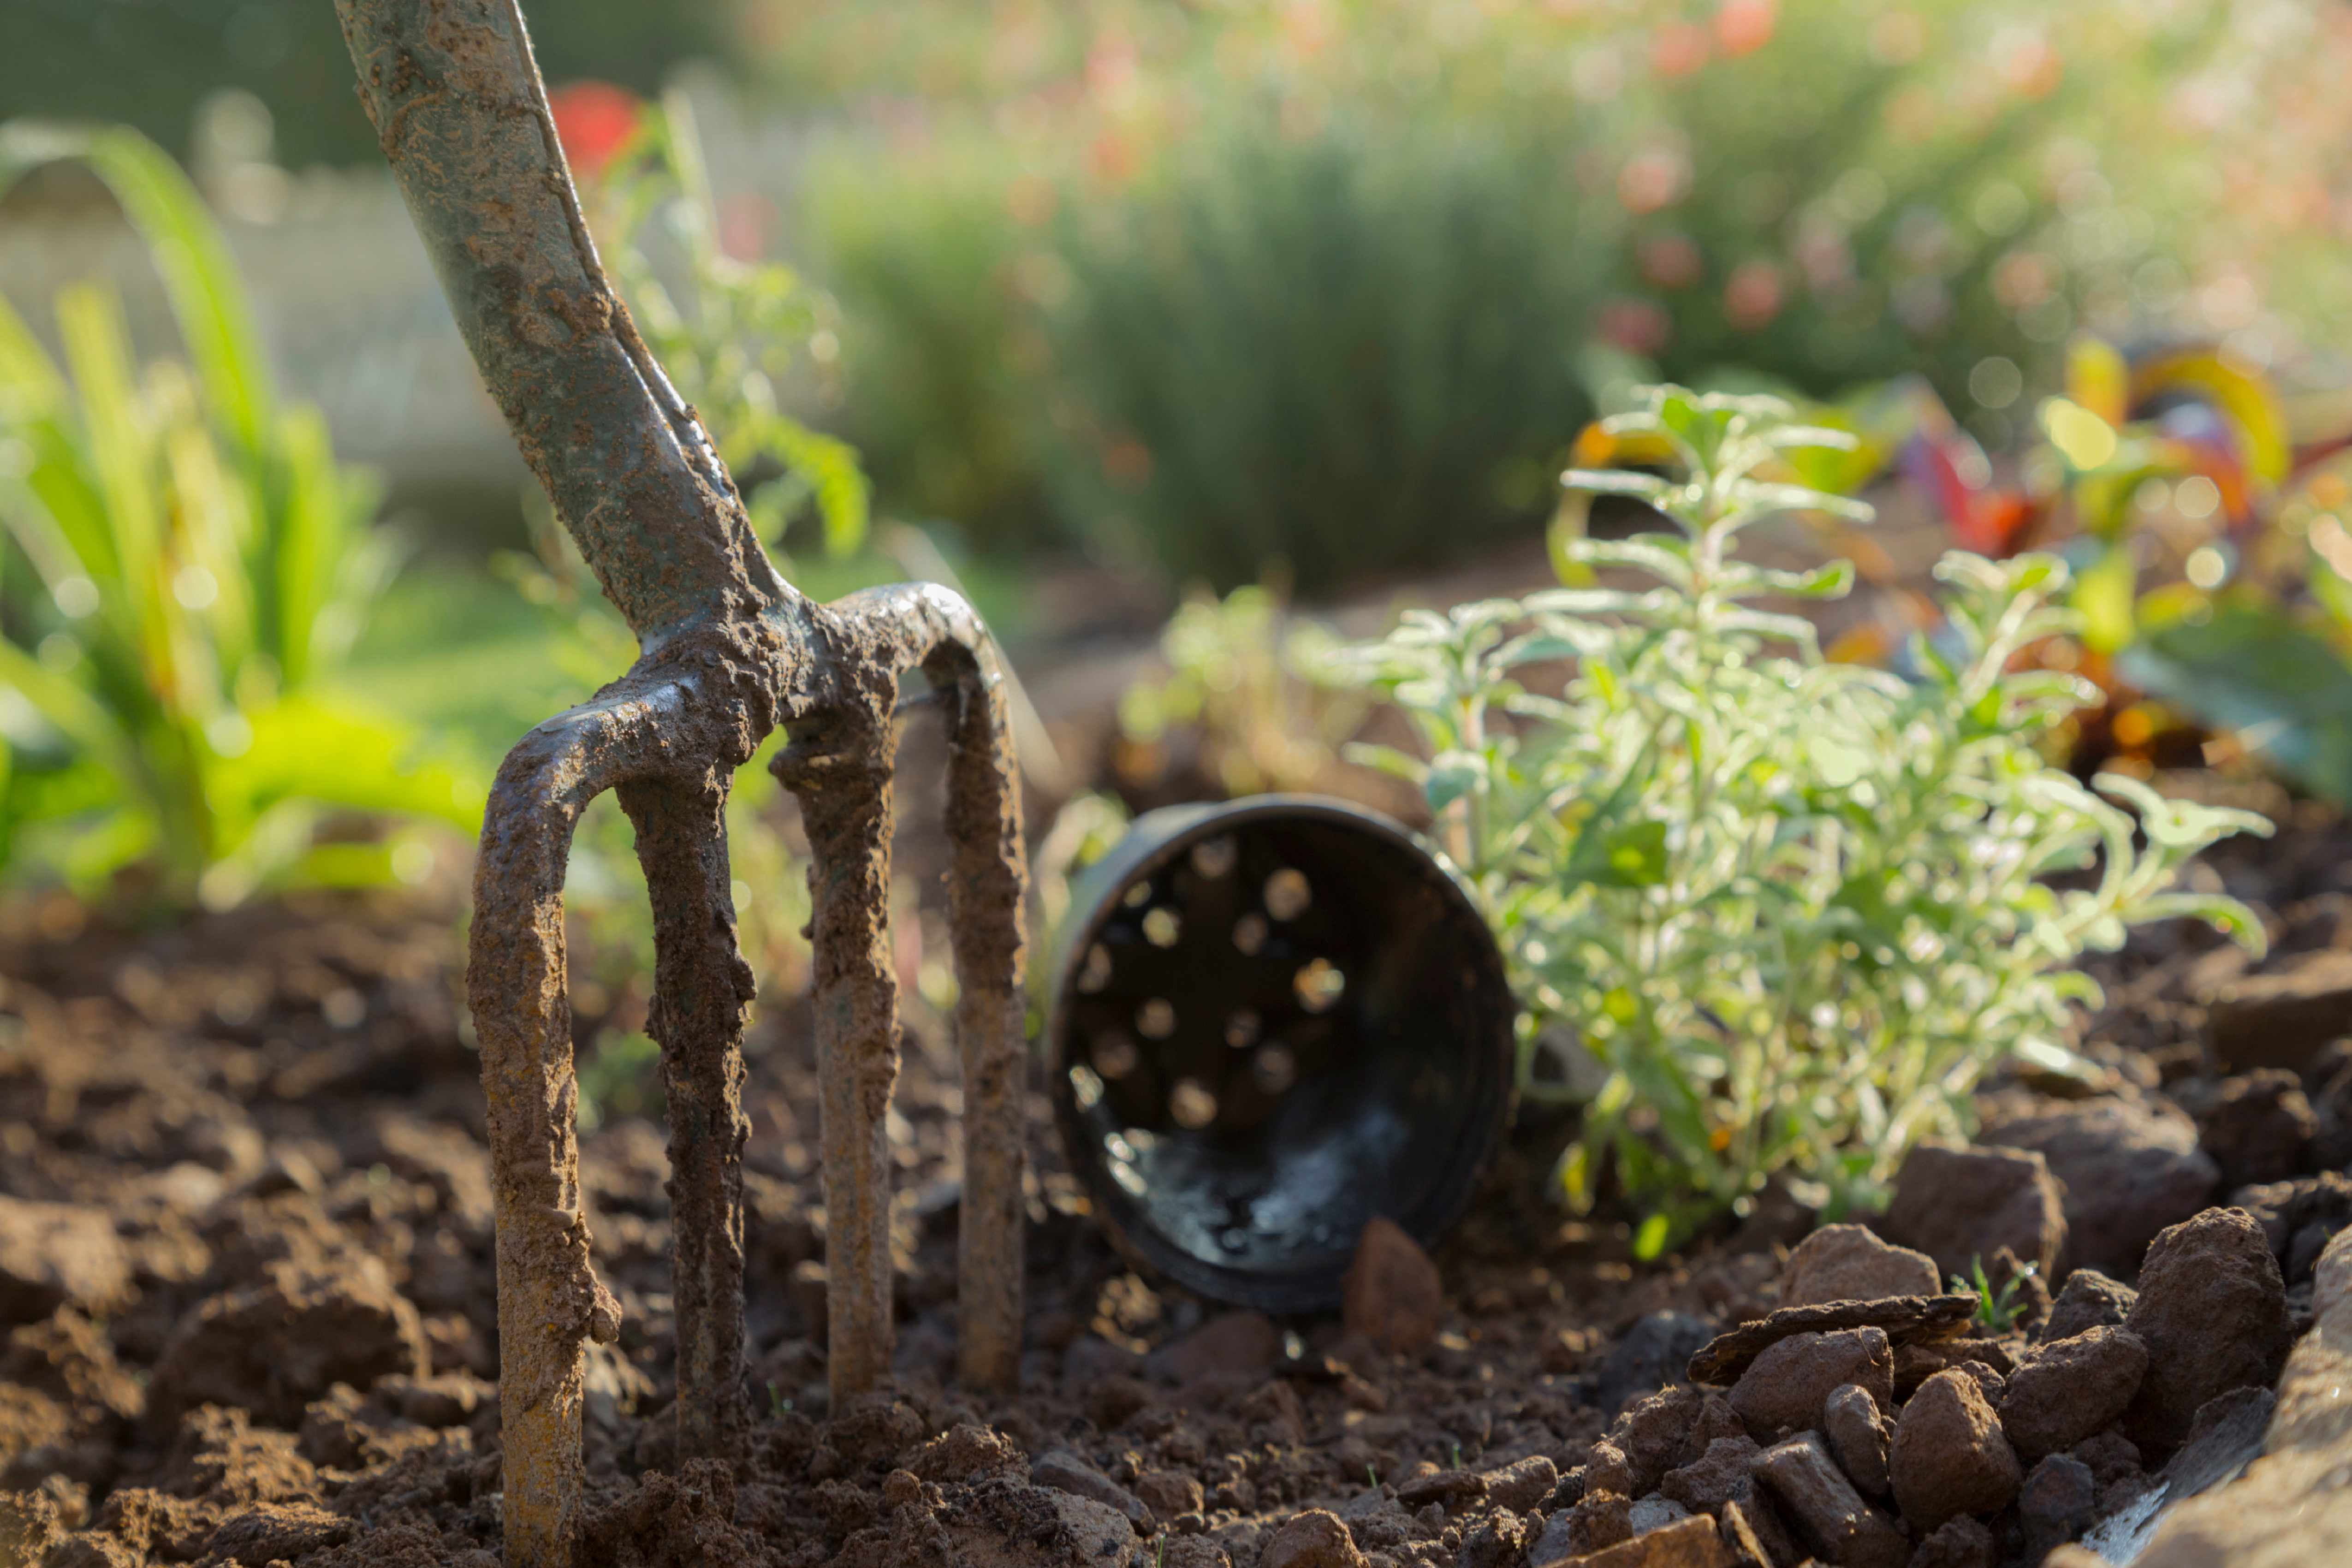 Garden fork in a flower bed. (Photo by: Loop Images/UIG via Getty Images)